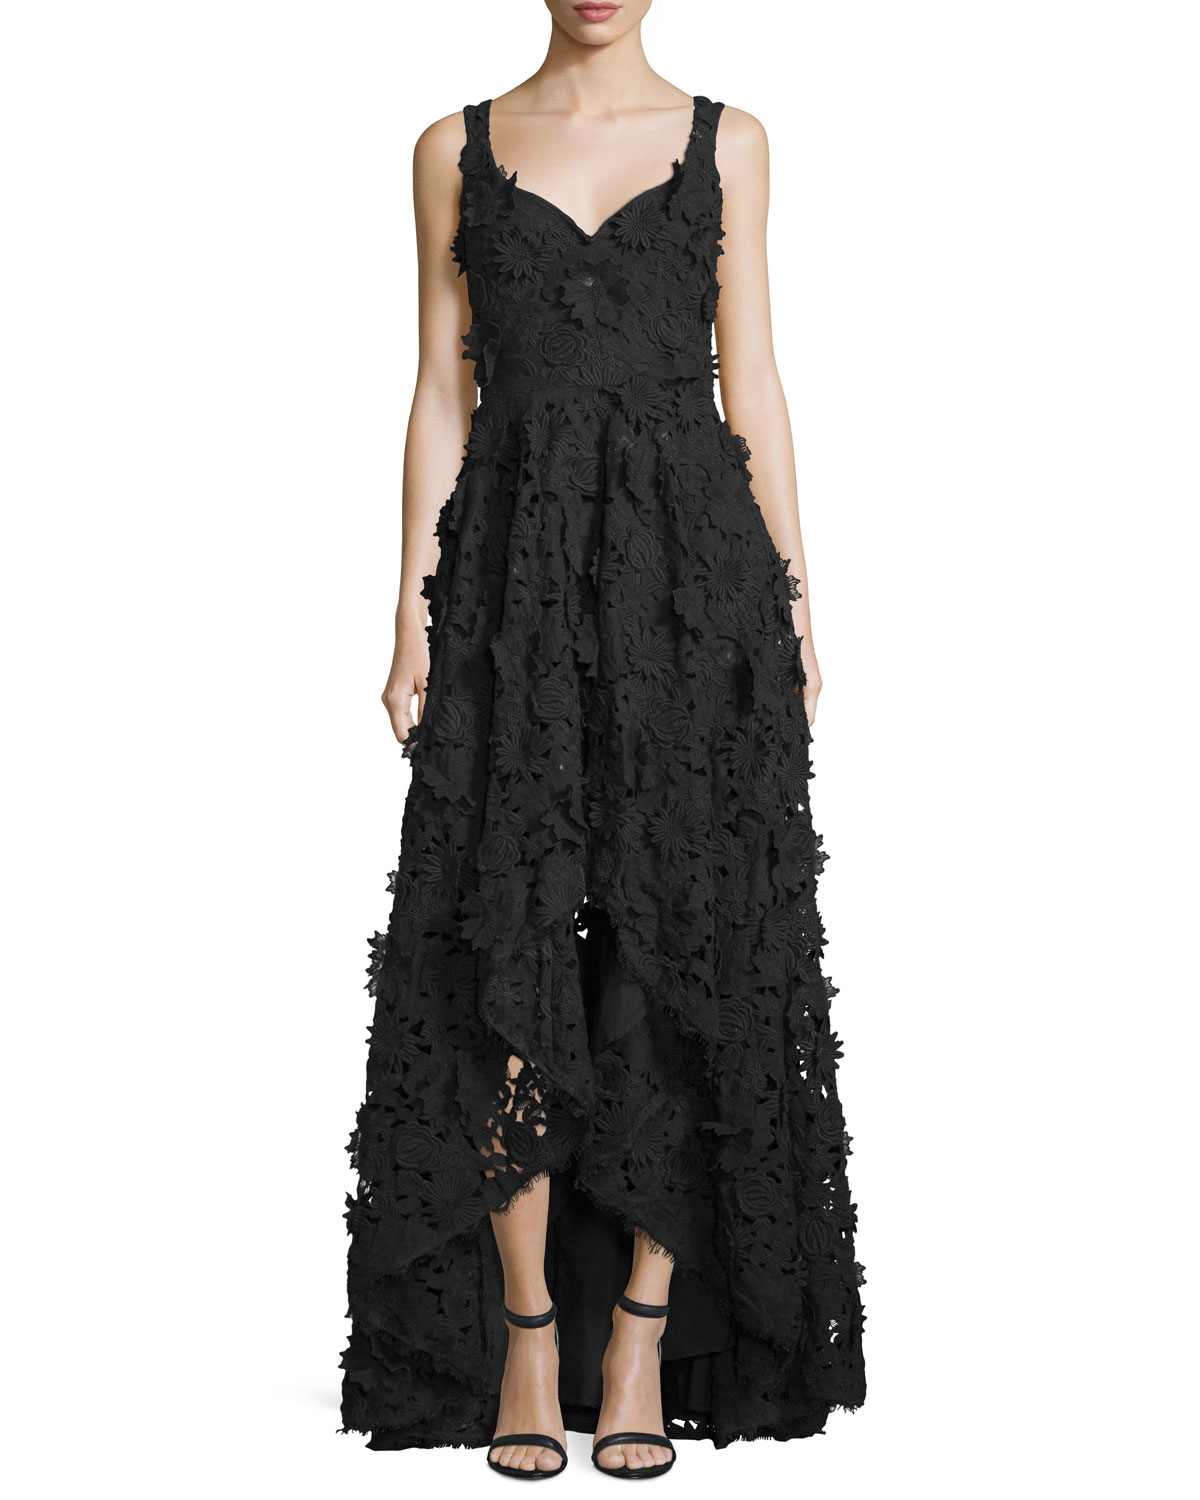 Nicole Miller Floral-Embellished High-Low Gown, Black | Neiman Marcus